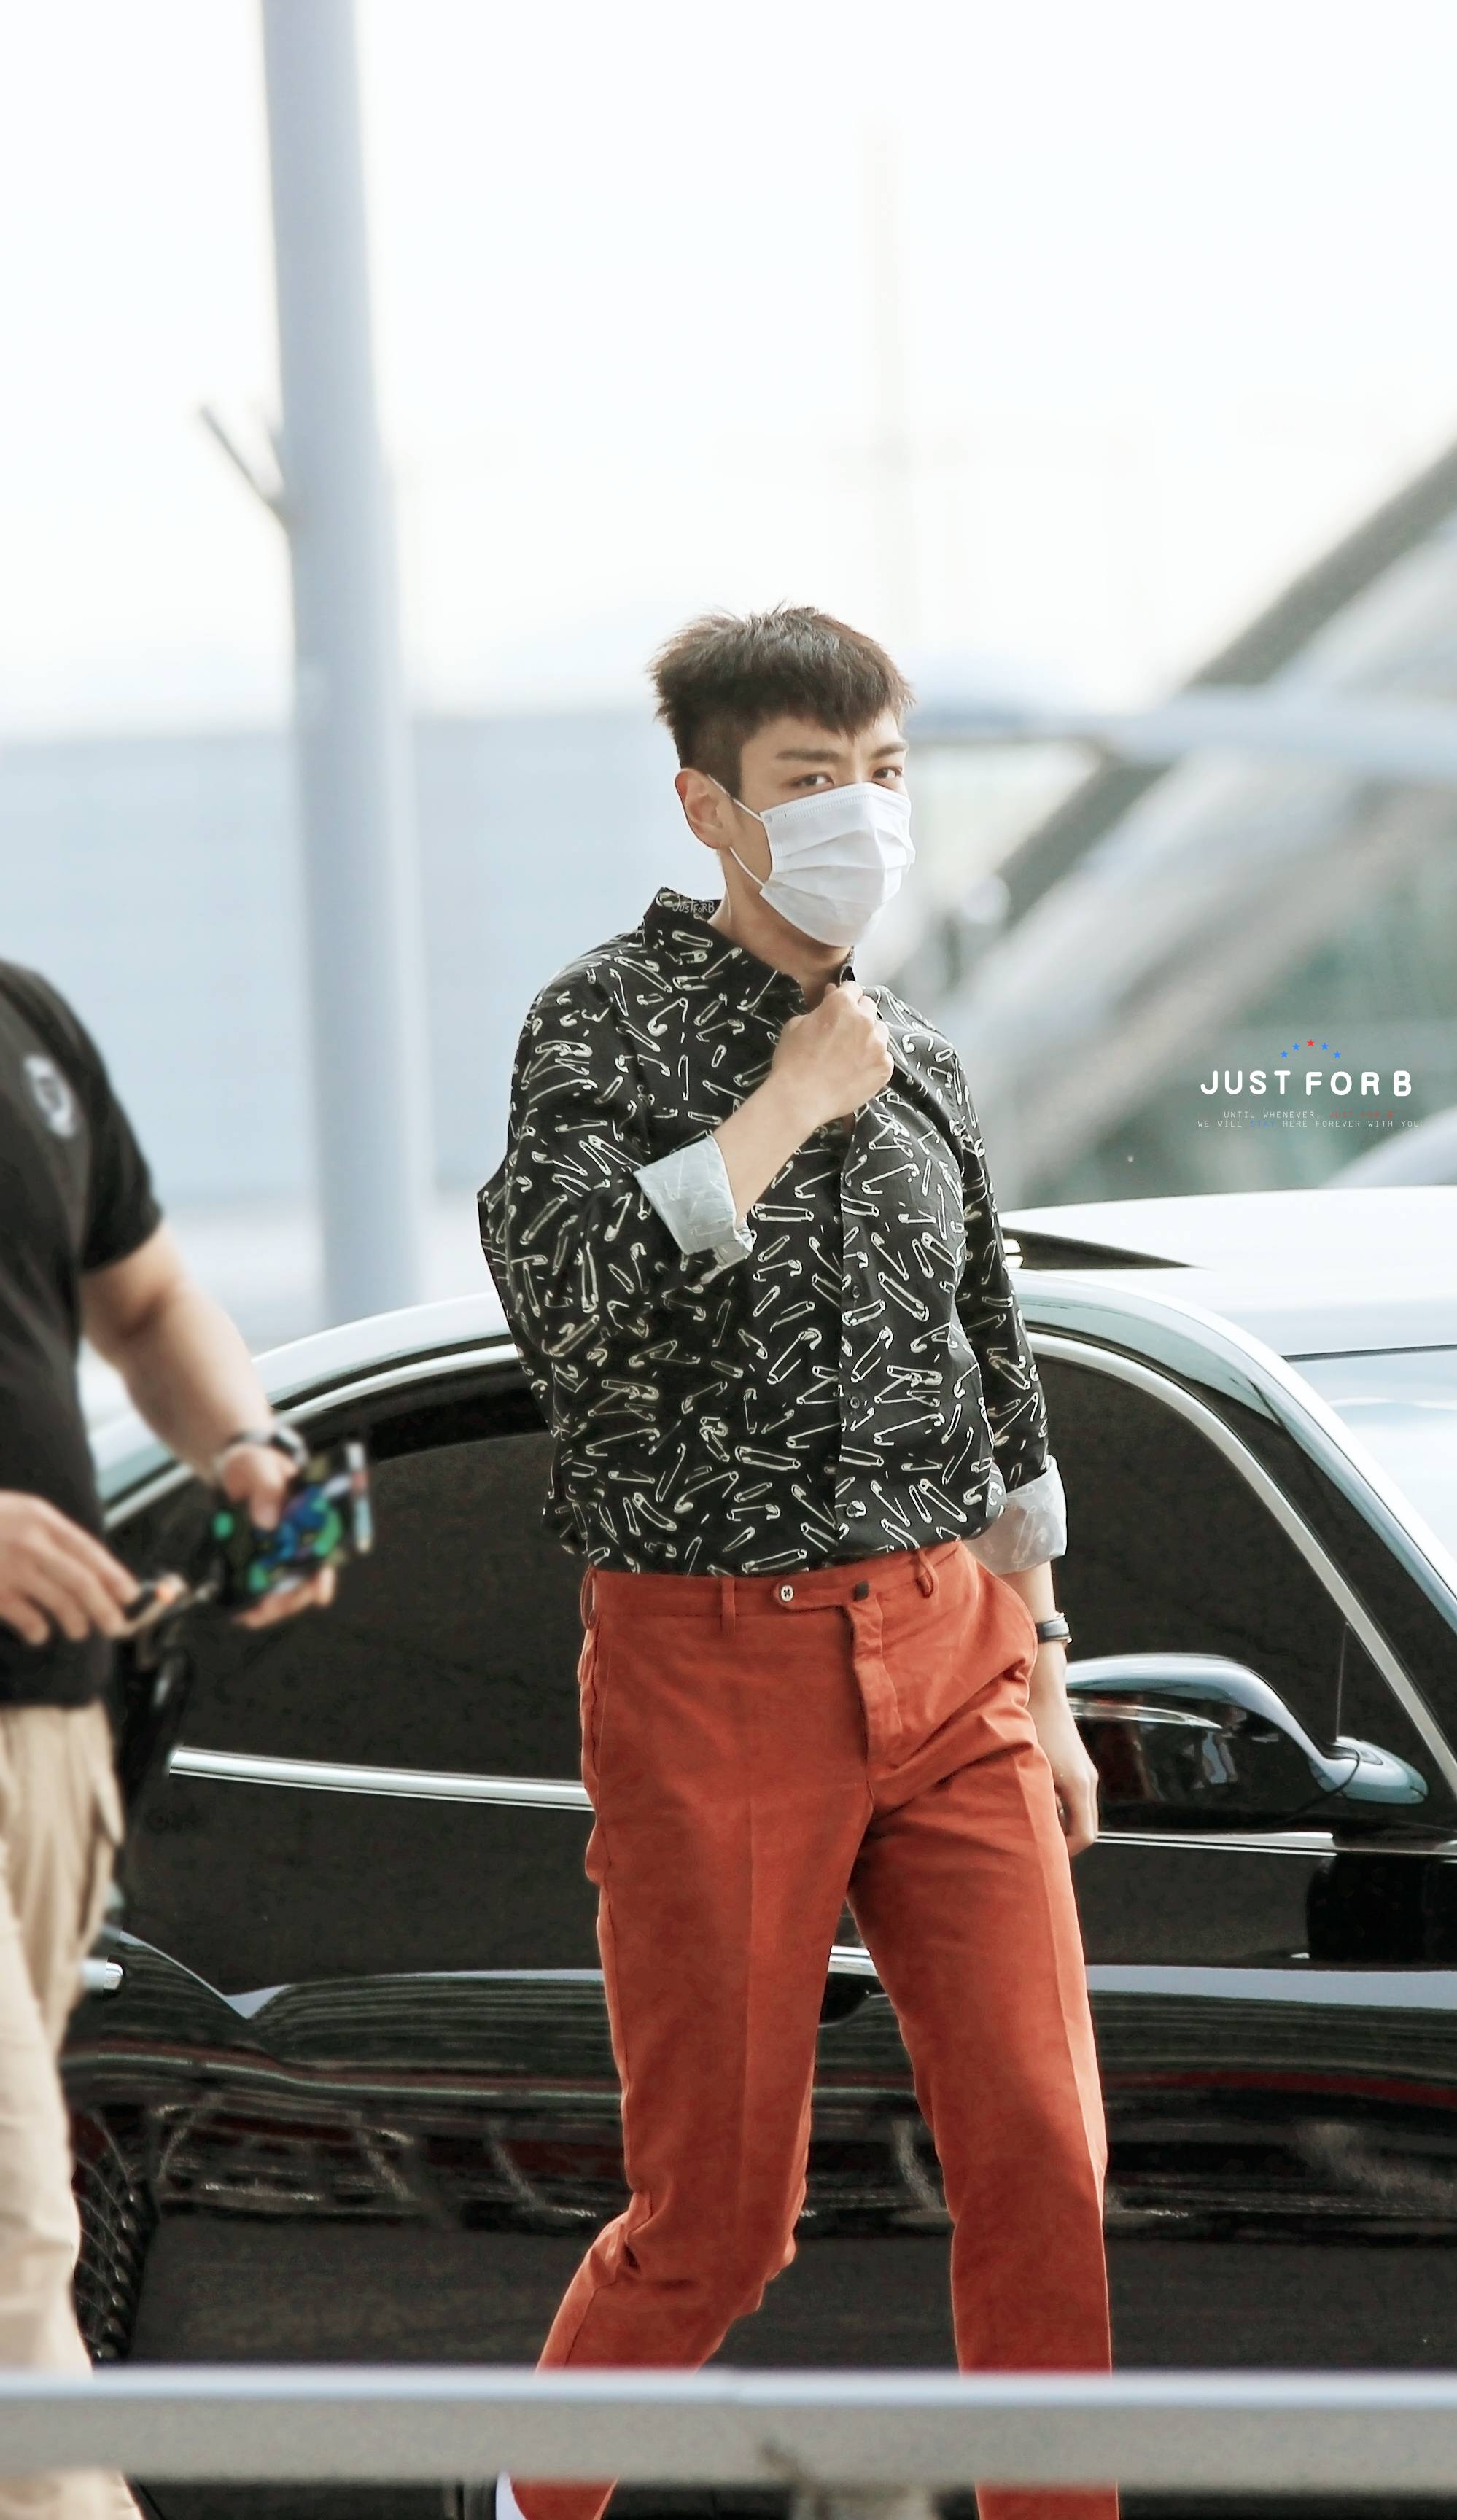 Big Bang - Incheon Airport - 19jun2015 - Just_for_BB - 17.jpg